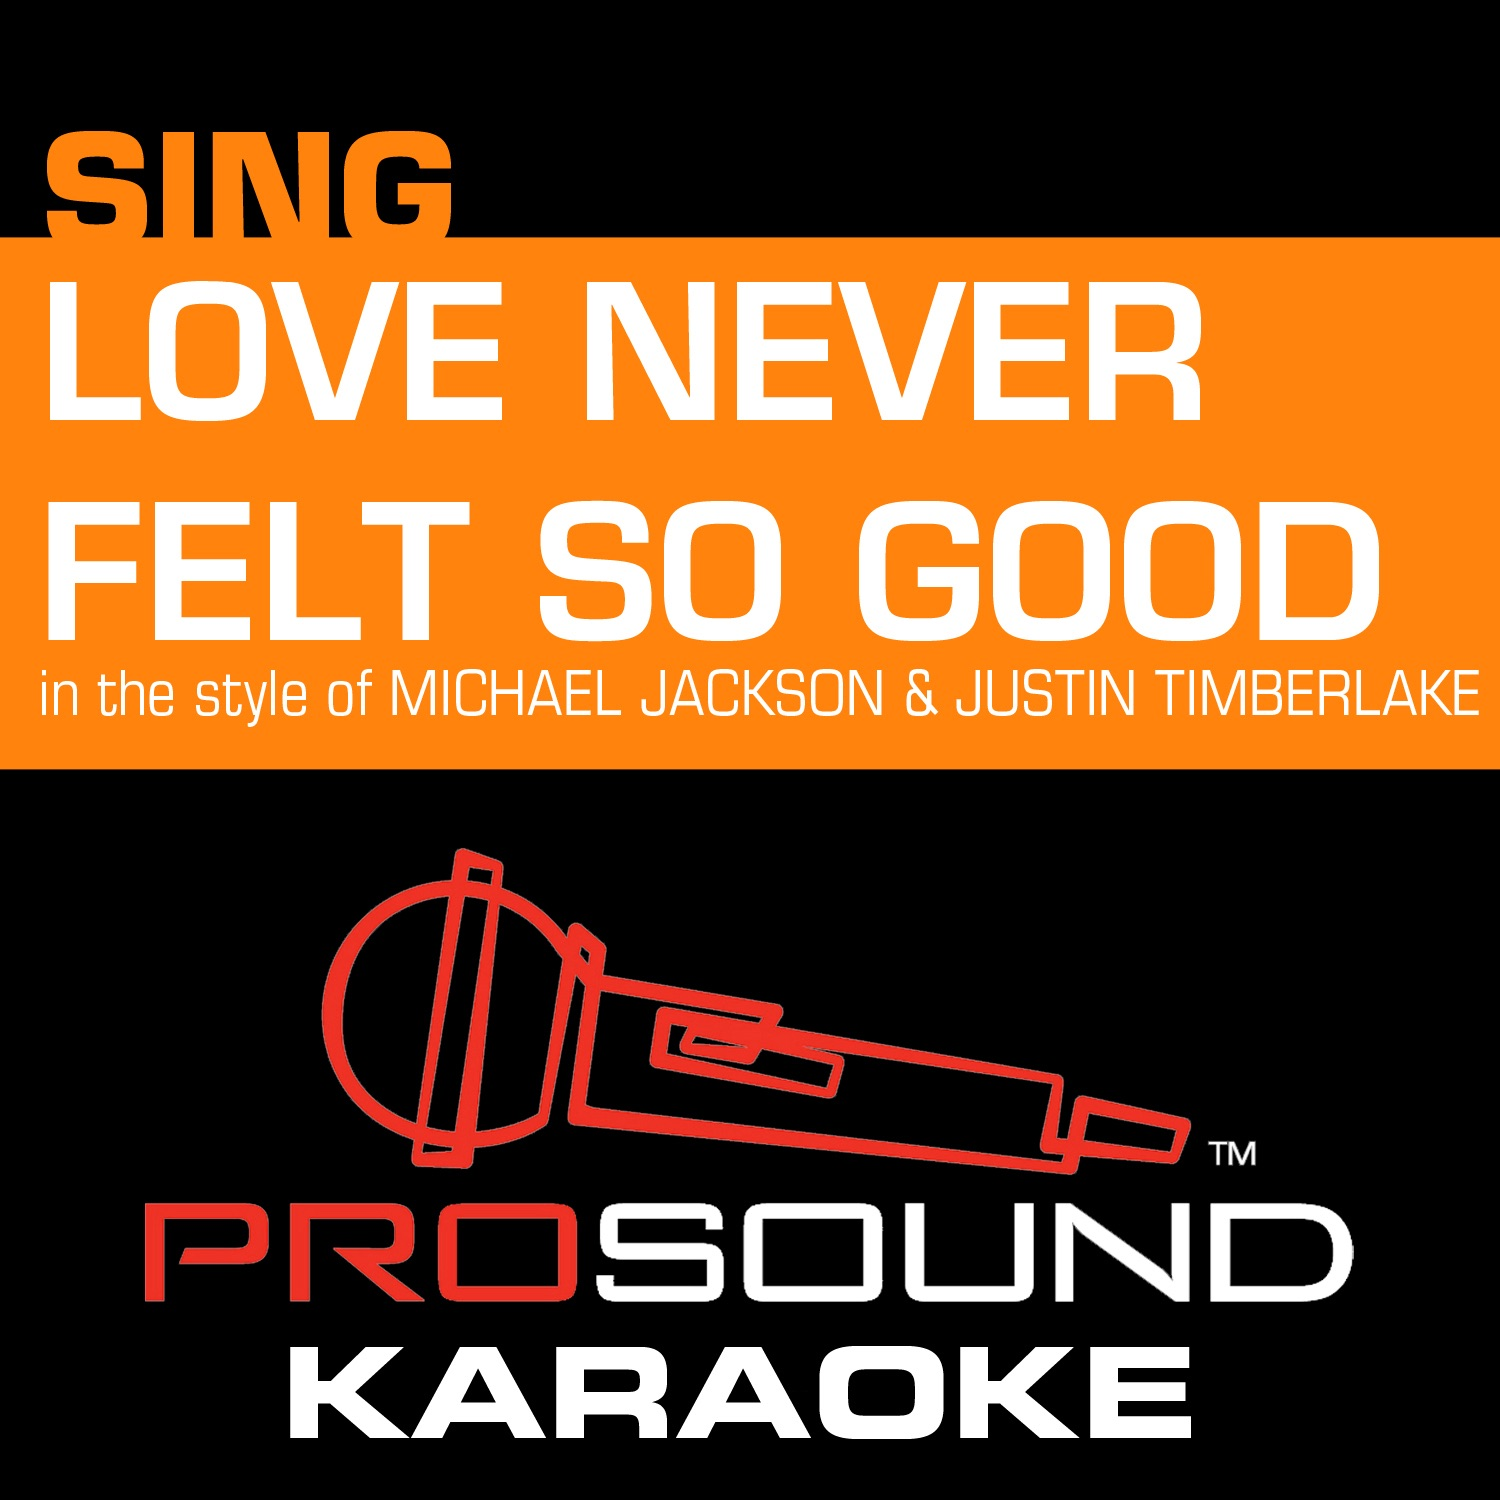 Love Never Felt so Good (In the Style of Michael Jackson & Justin Timberlake) [Karaoke Instrumental Version] - Single